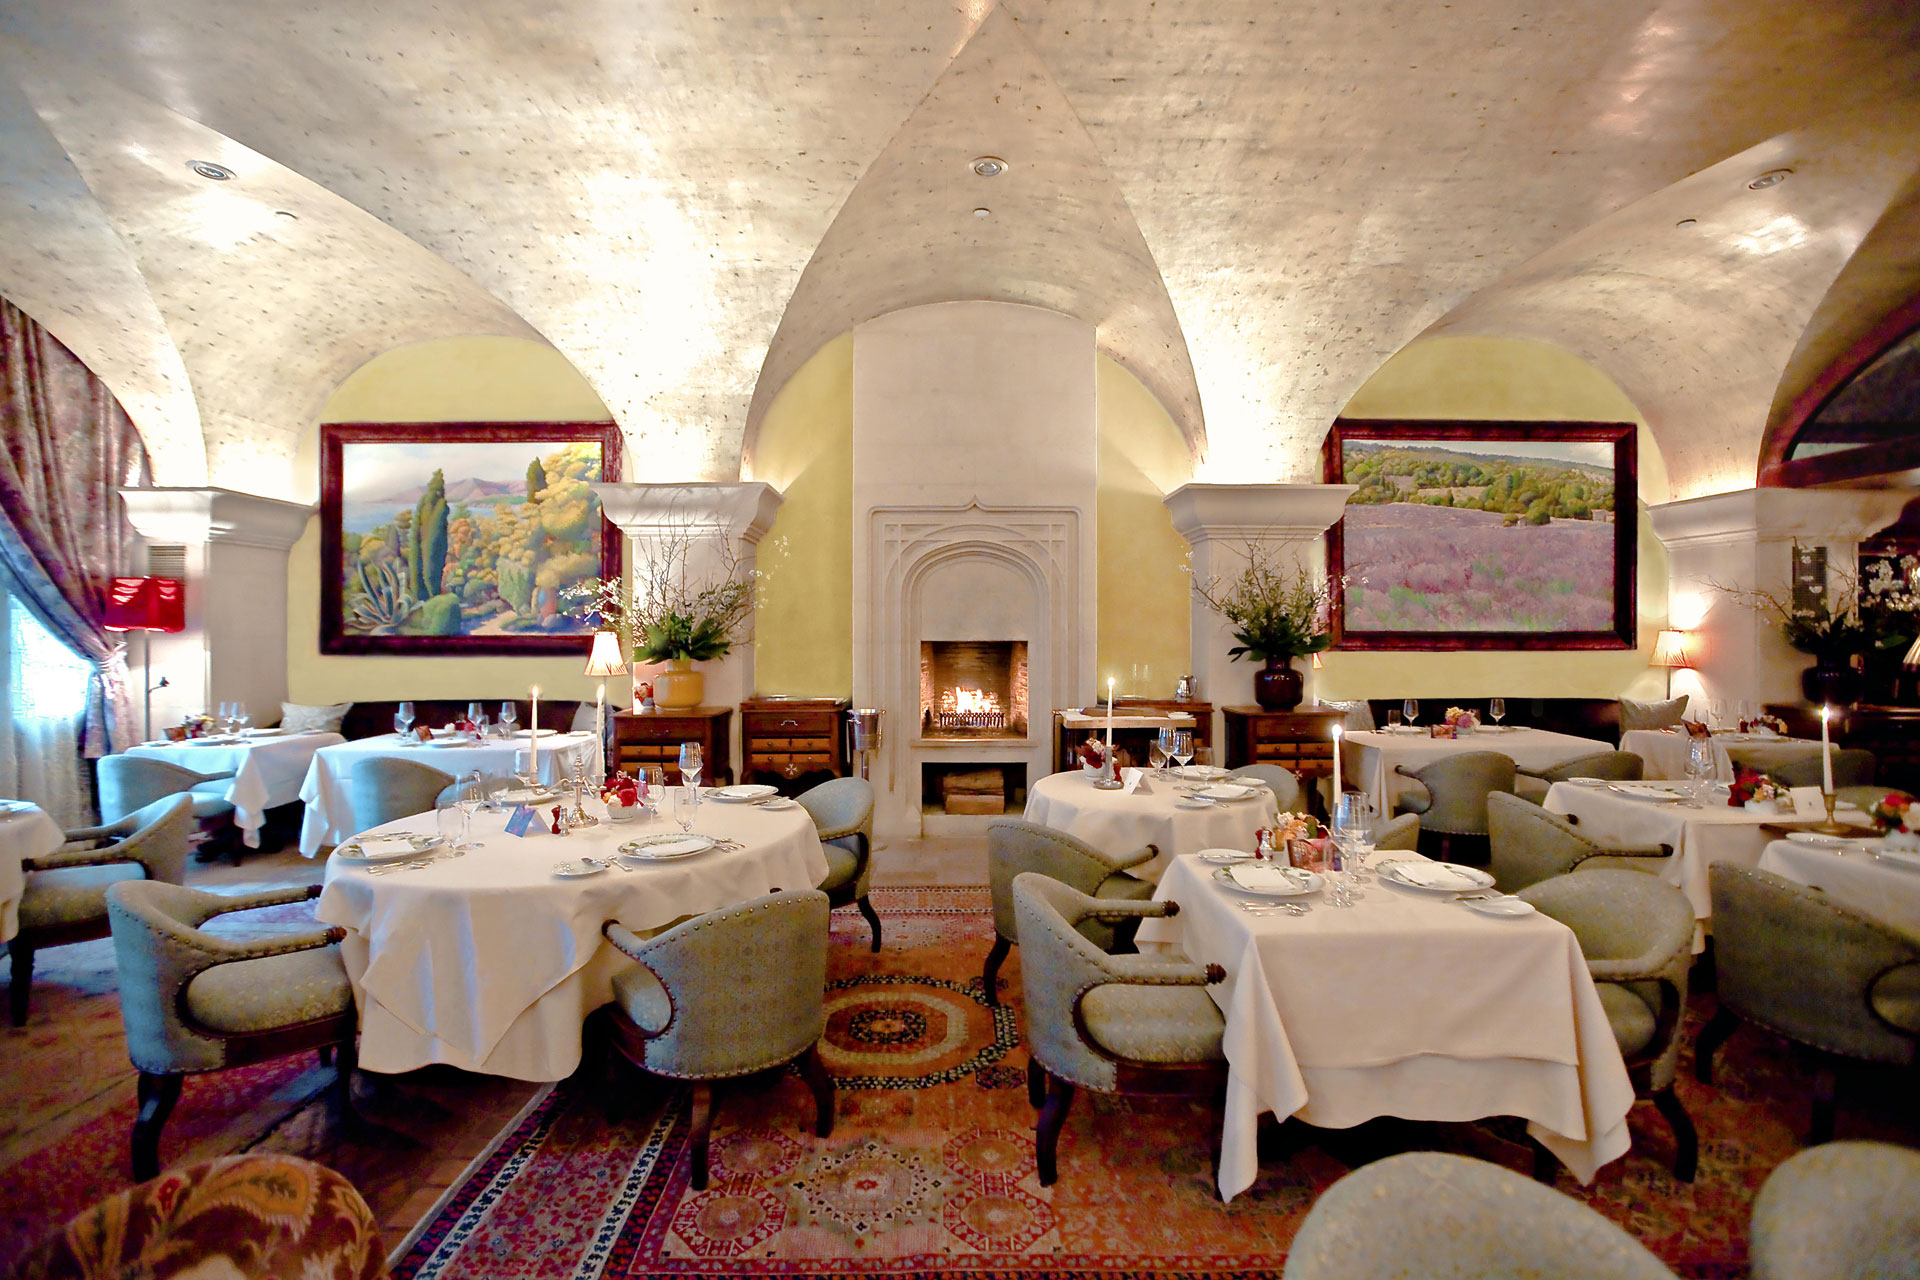 bouley restaurant fine dining tribeca nyc 10013